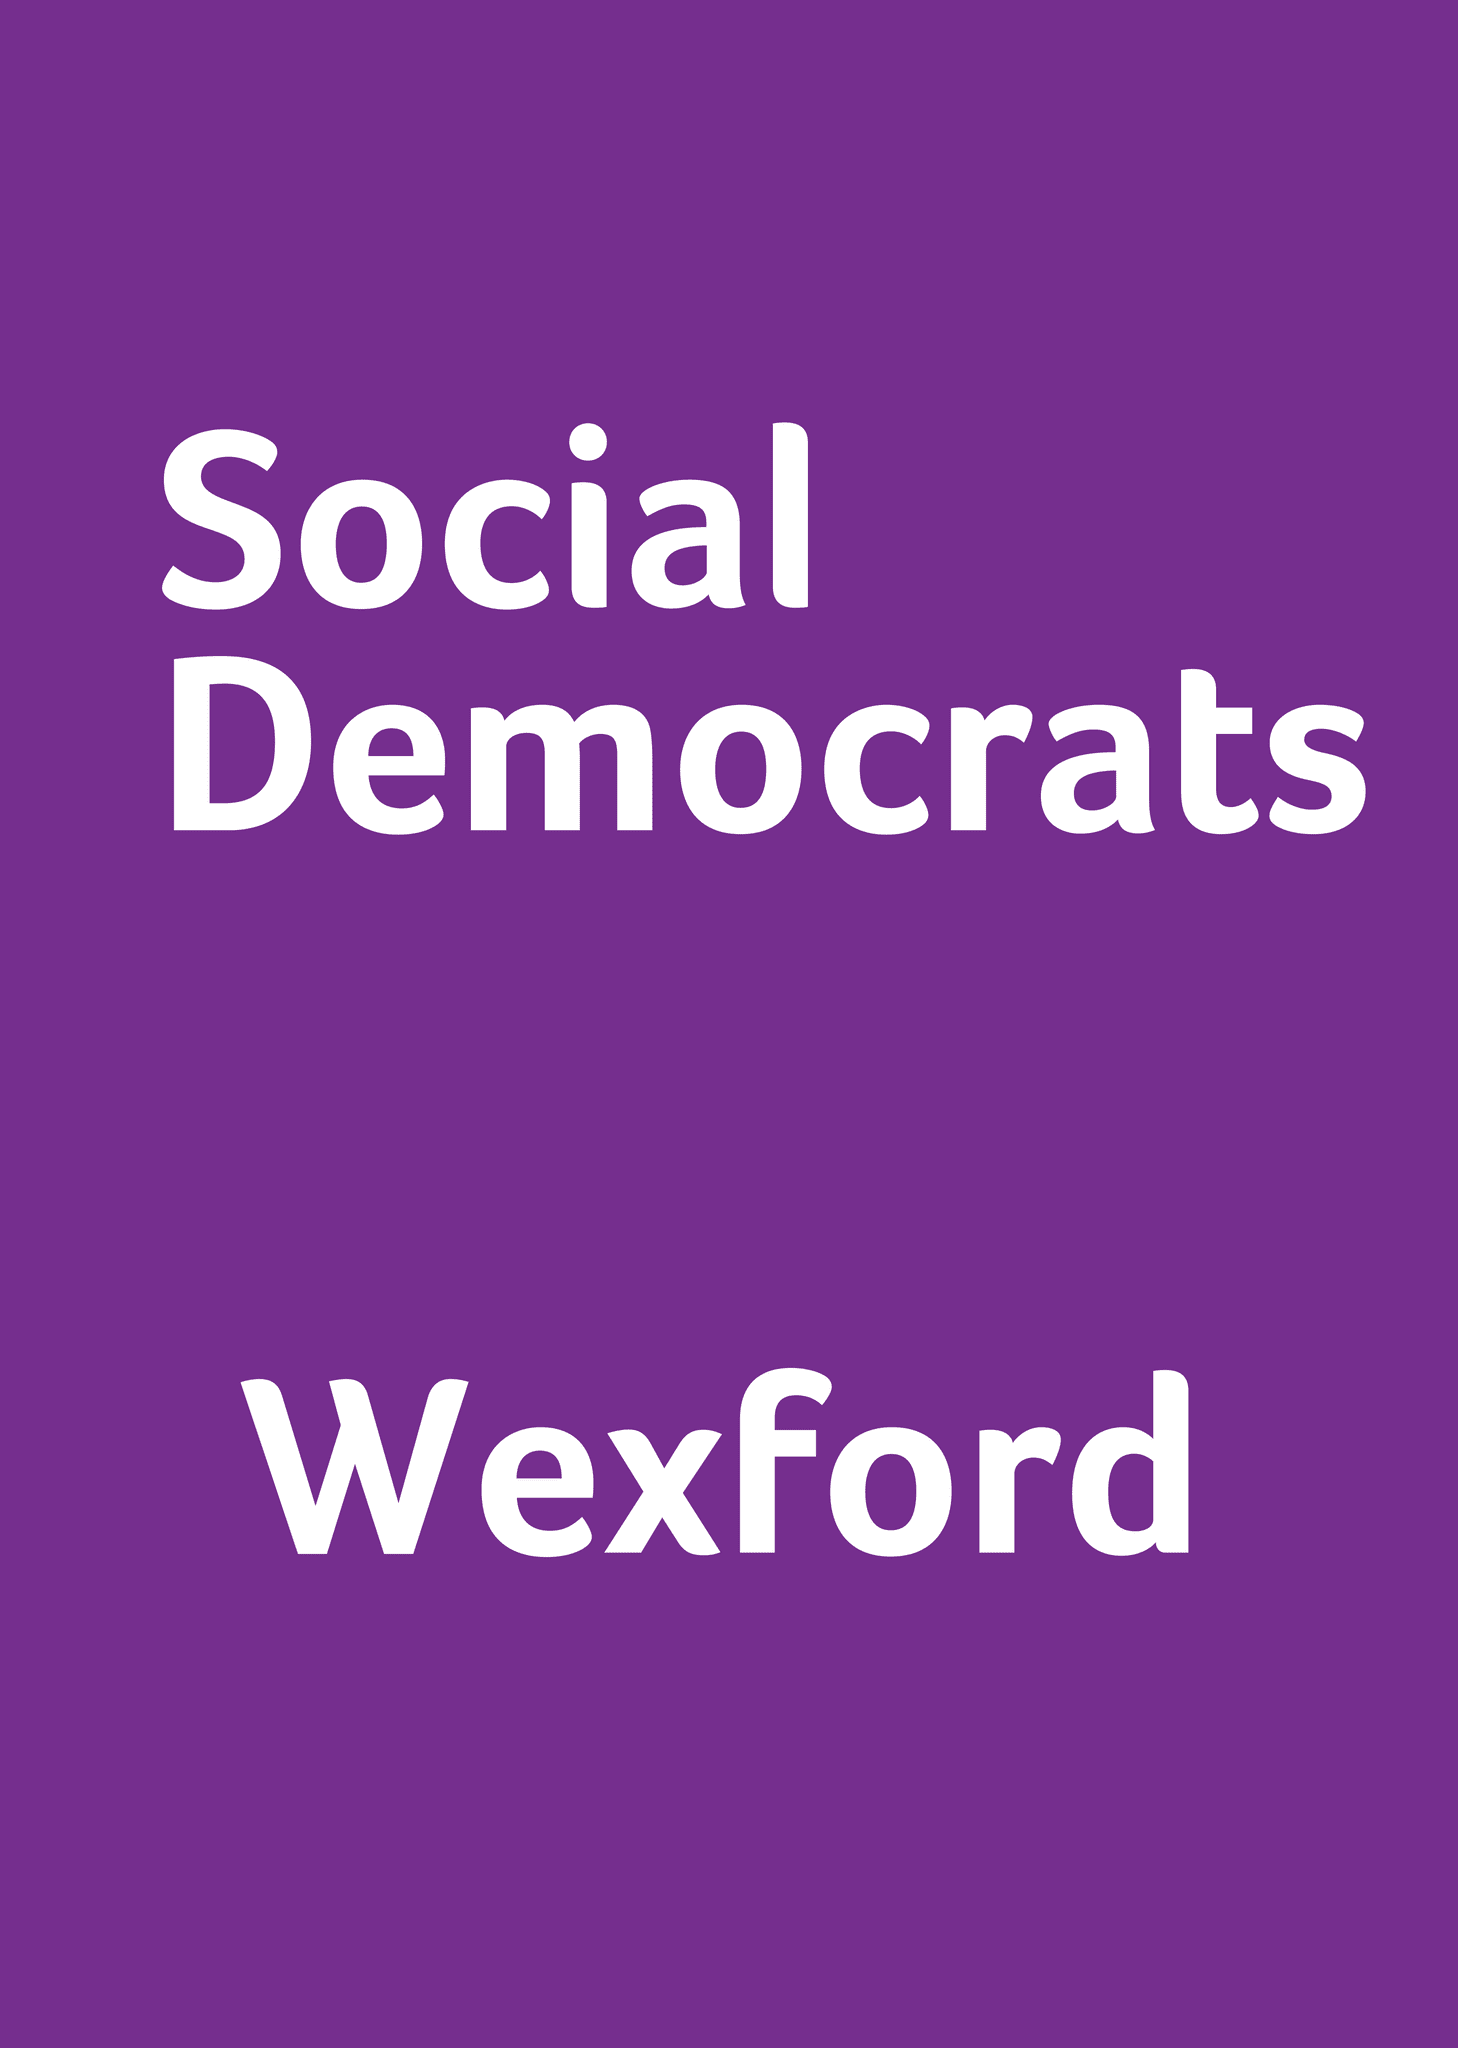 """<p class=""""hvr-title"""">Wexford Branch</p><p class=from-place>Wexford</p>"""